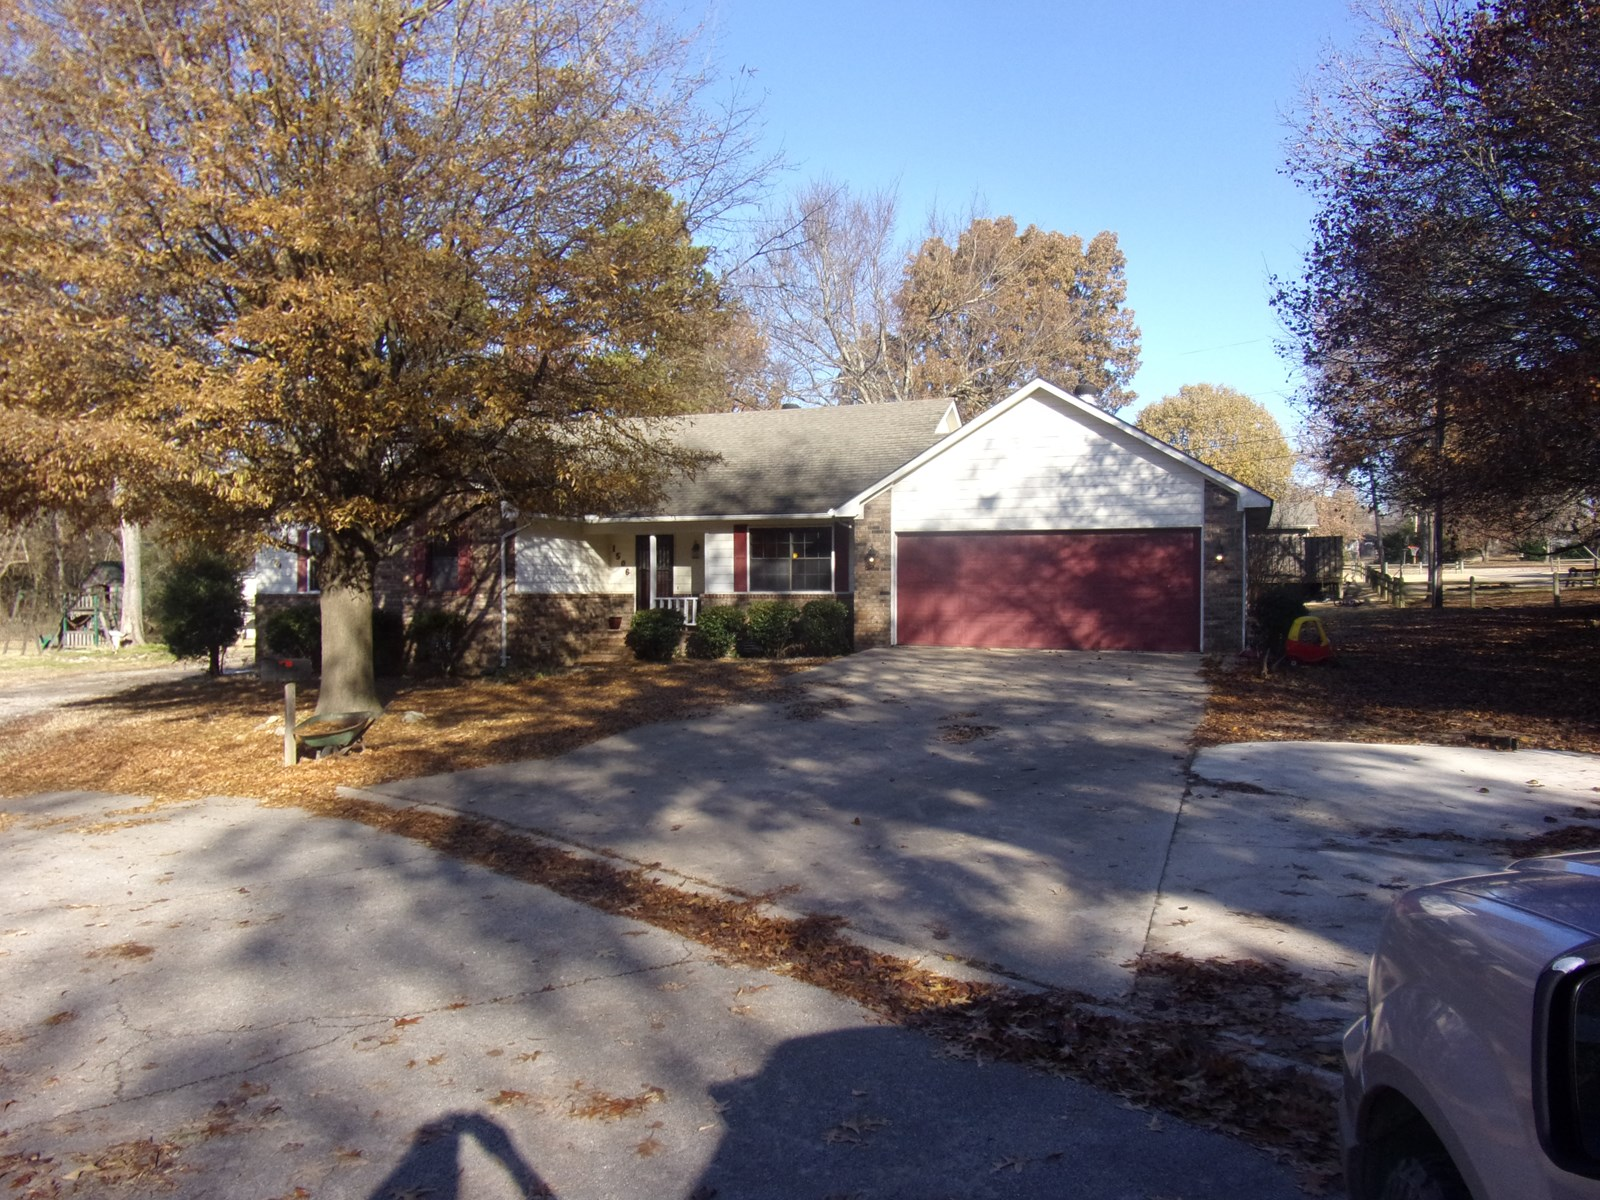 Home in town for sale, Pocahontas, AR 3 BR/2 BA, Large Shop